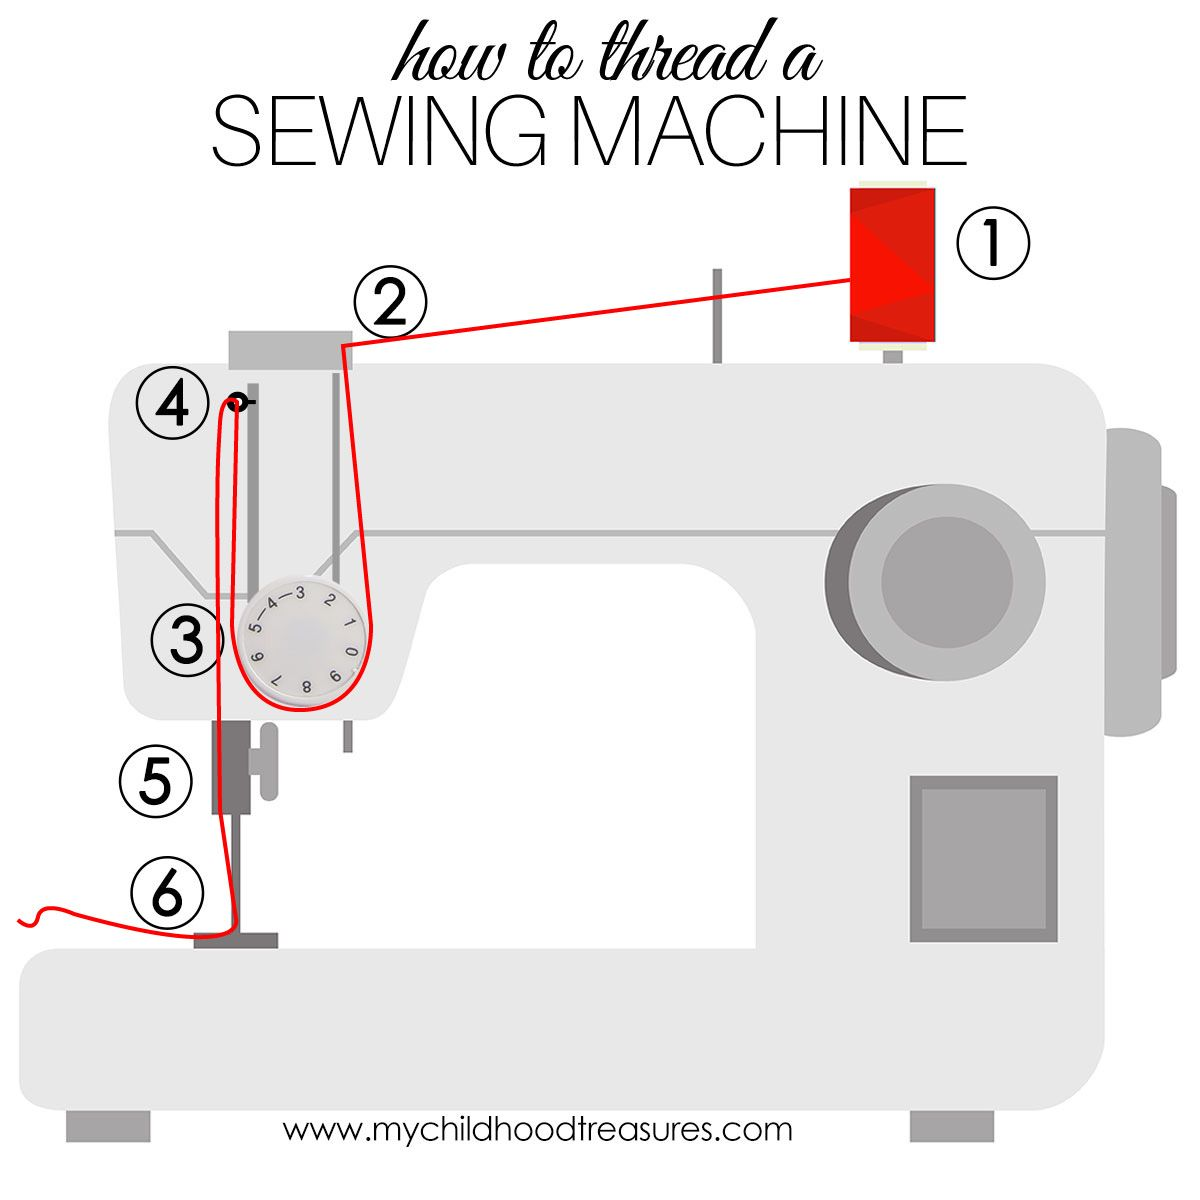 How to Thread a Sewing Machine | Step by Step | TREASURIE